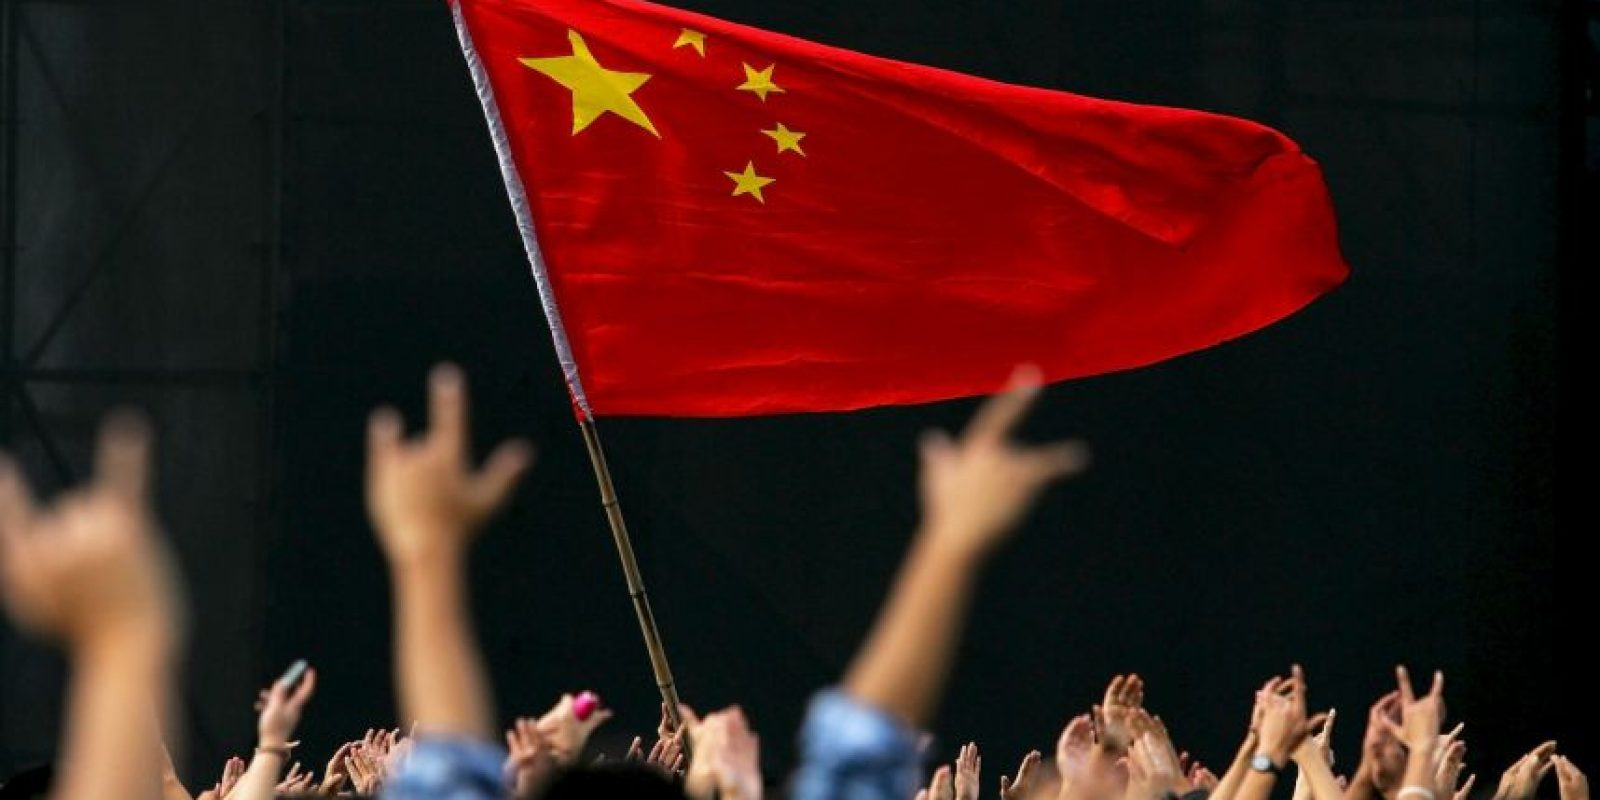 10. China Foto: Getty Images